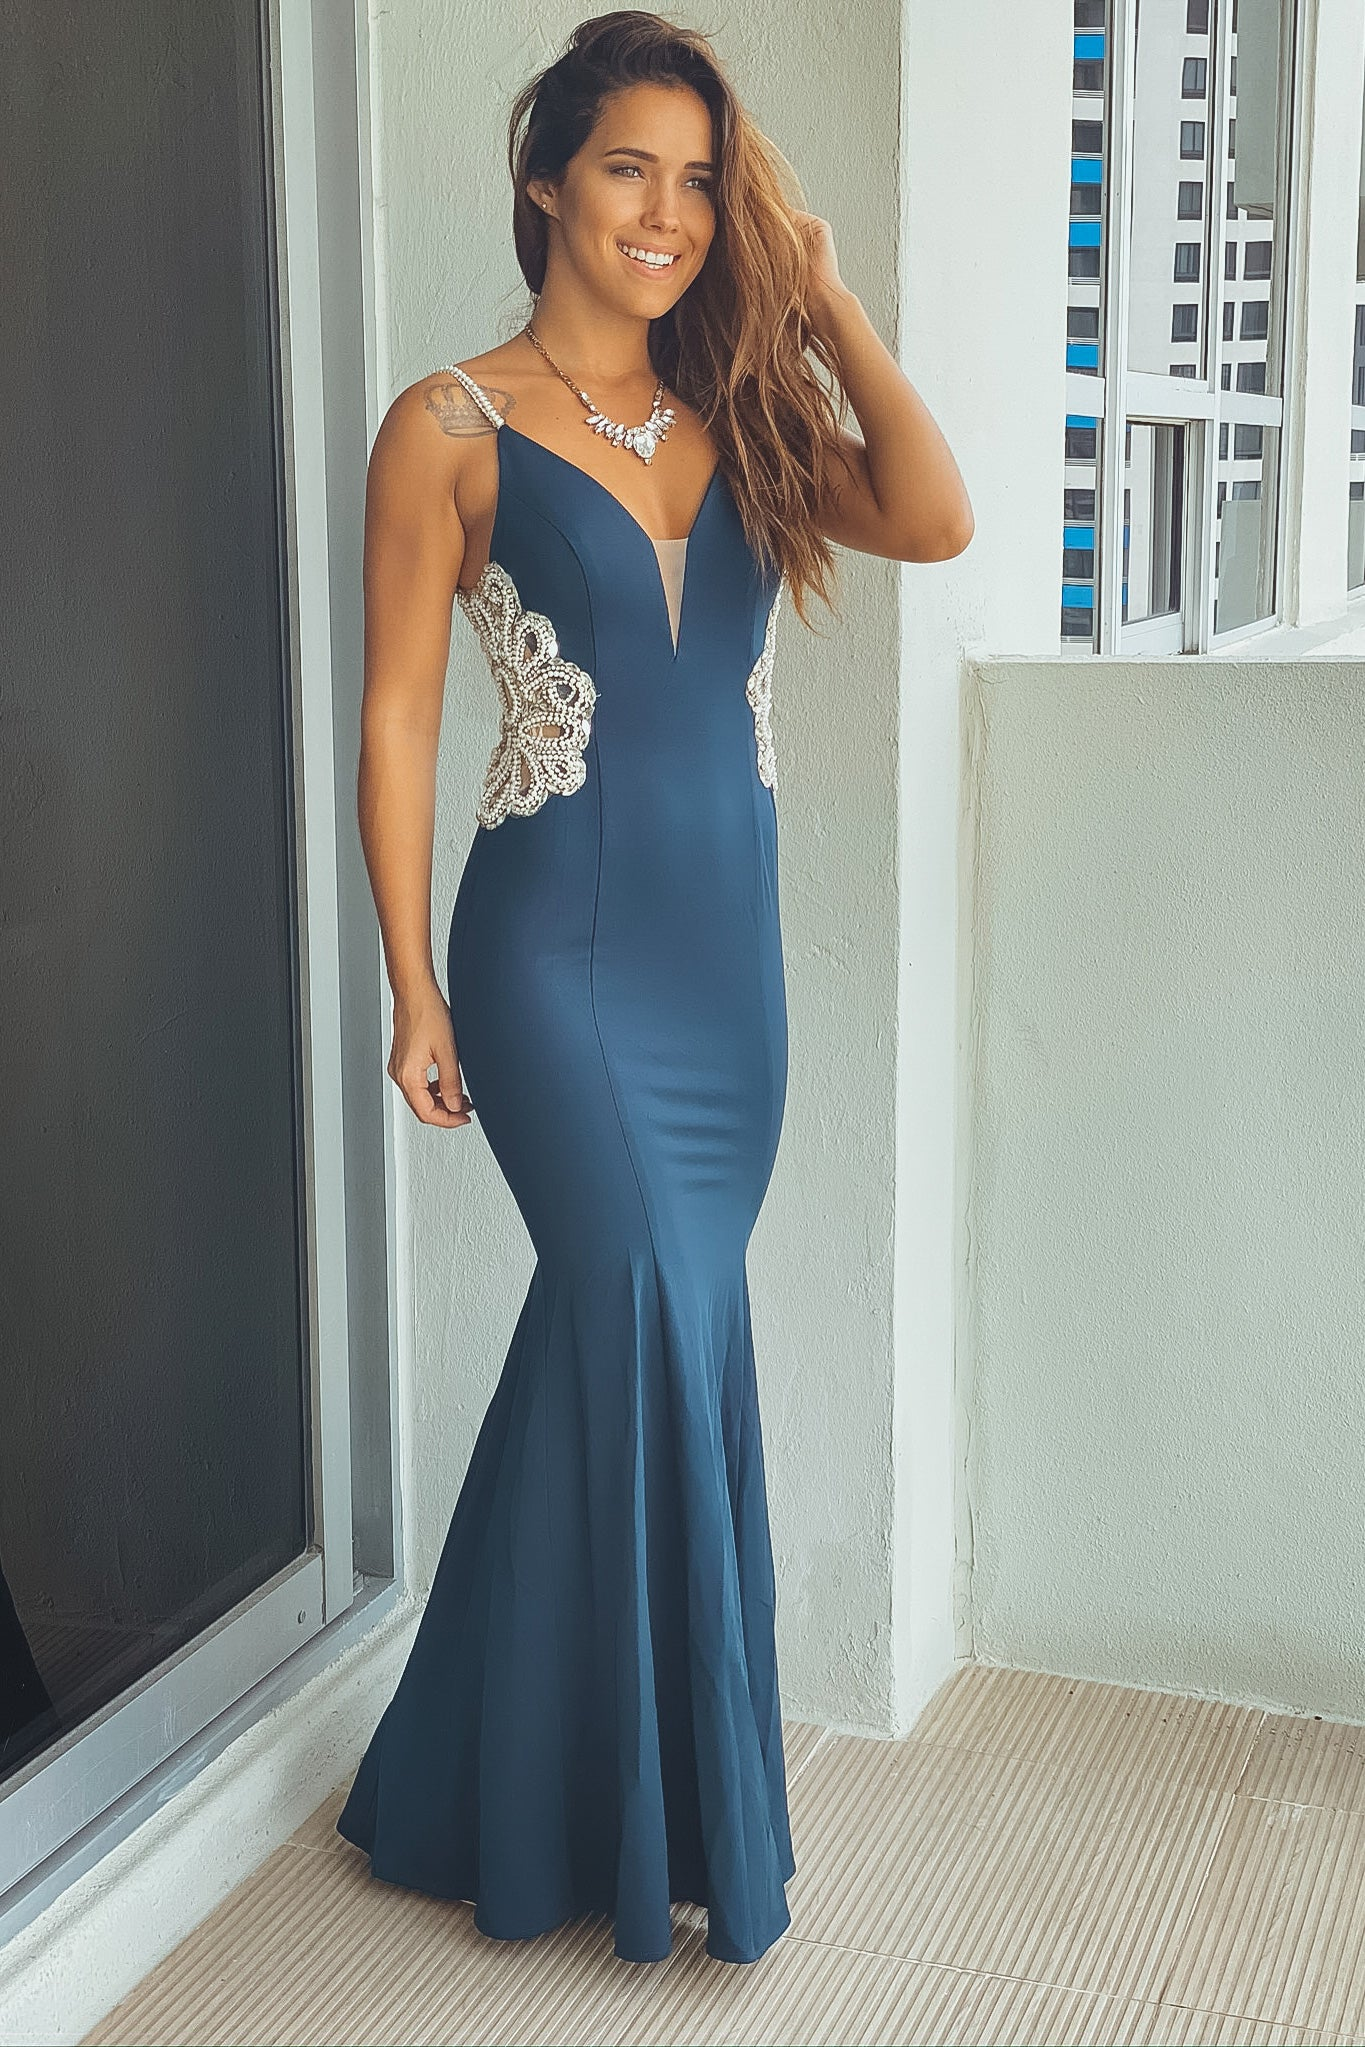 Lifestyle teal maxi dress with jeweled detail